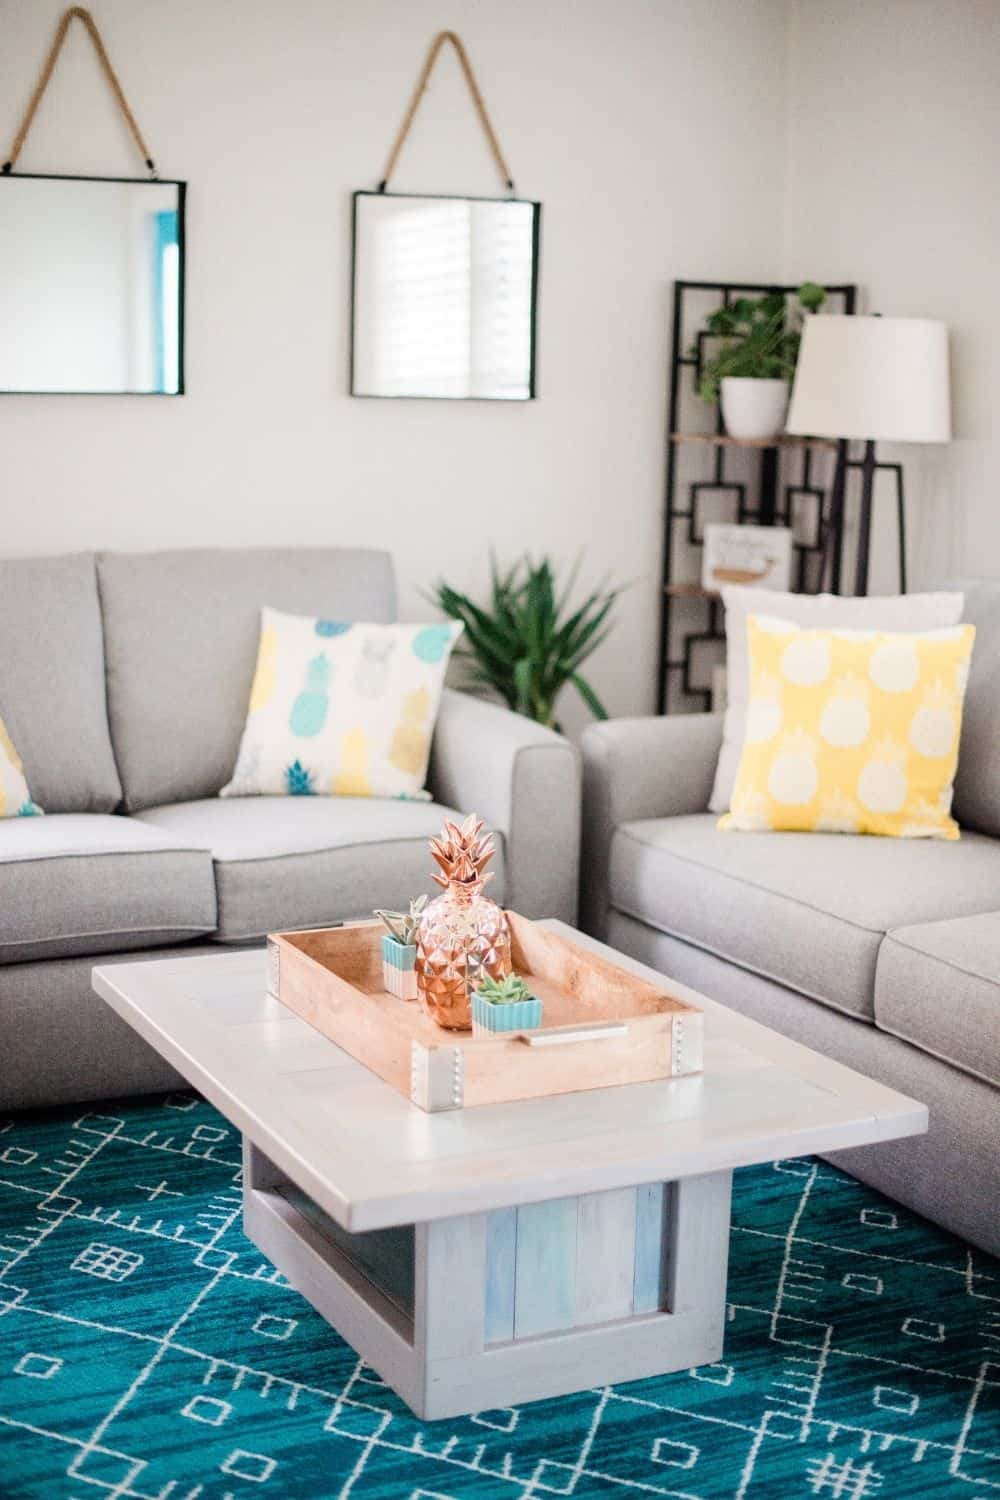 Beach Bungalow Living Room With Gray Couches and Yellow Pineapple Pillows and bold blue rug